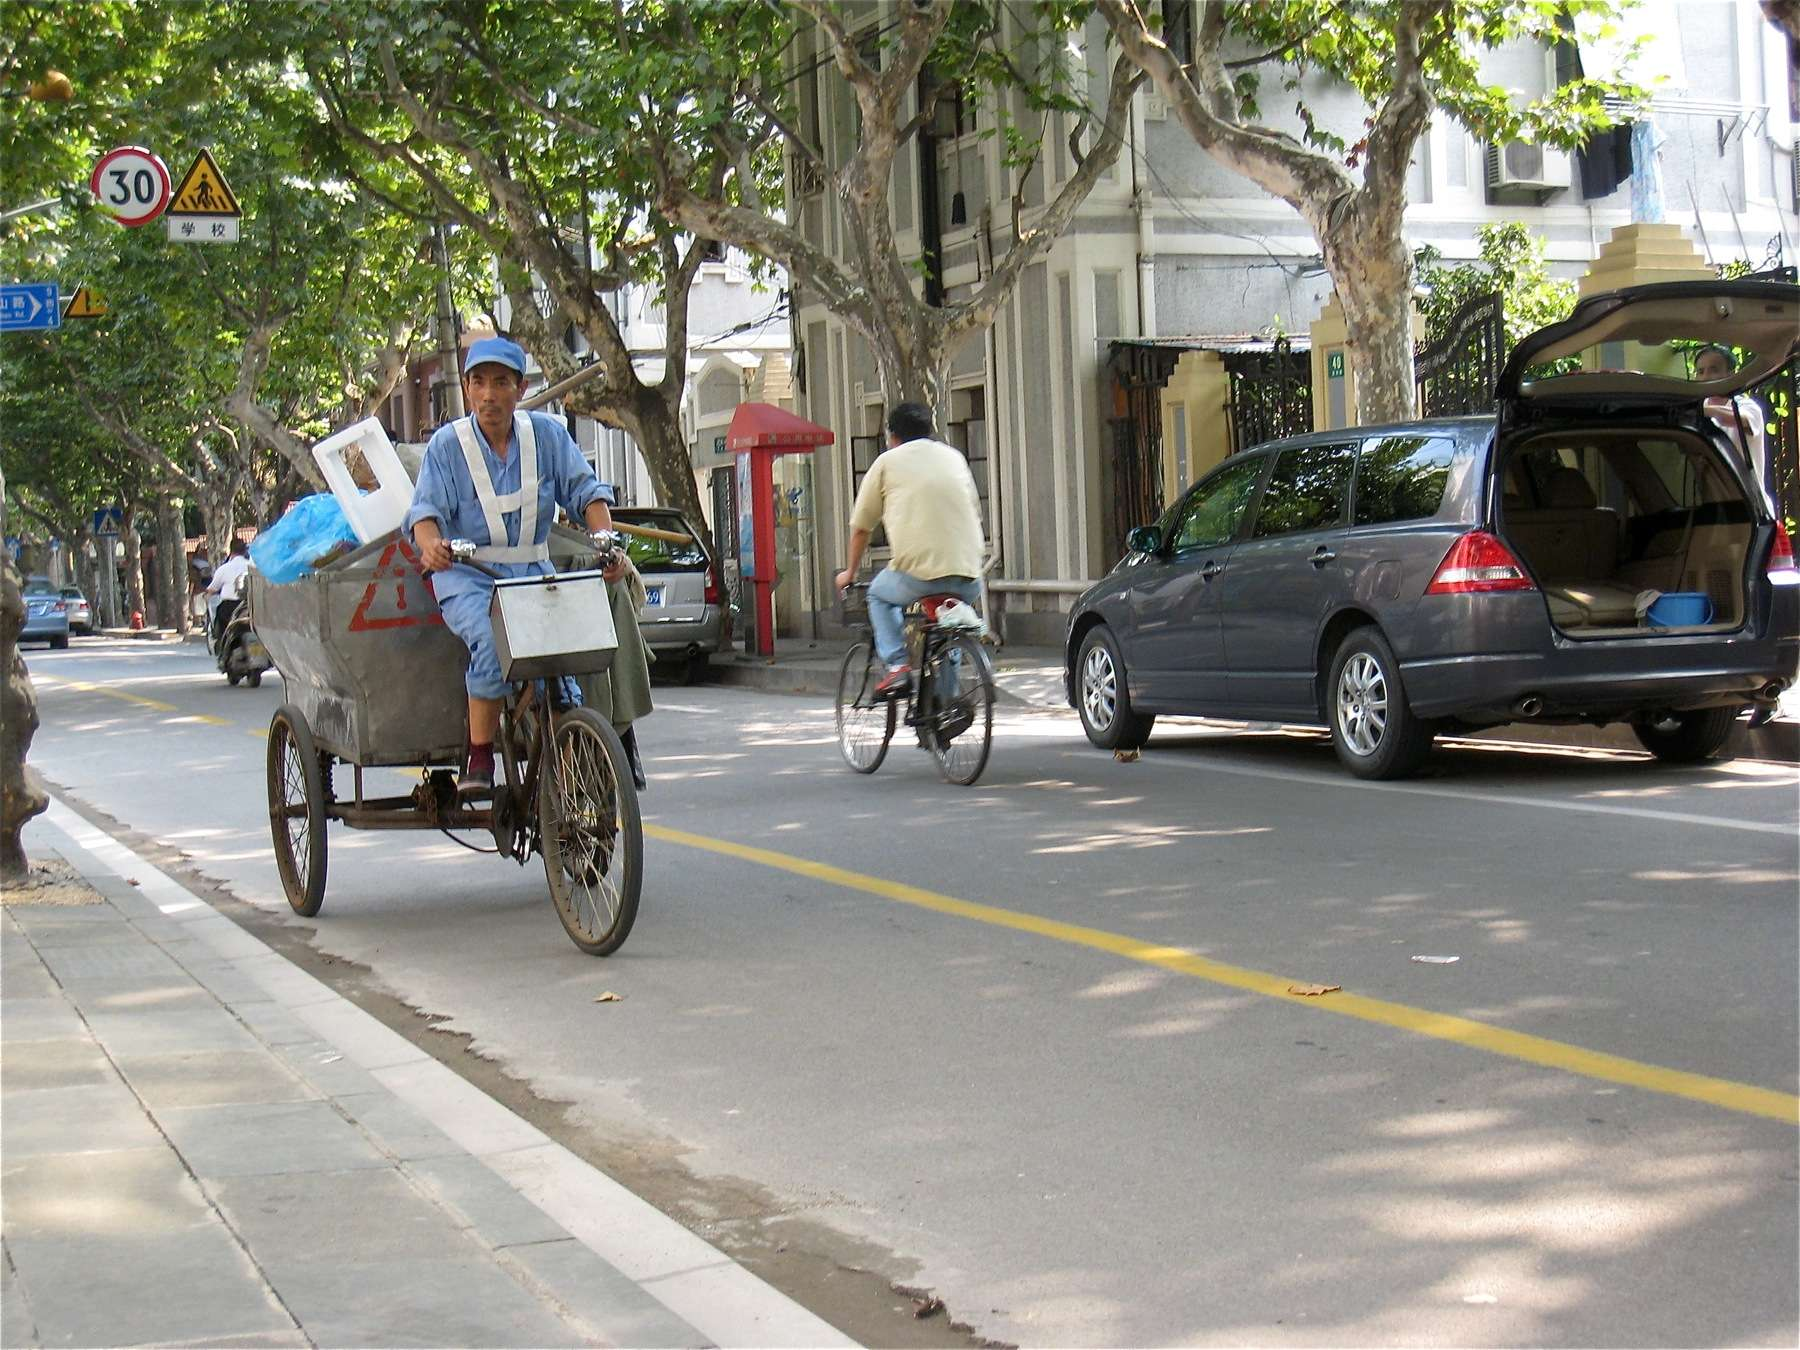 The French Concession